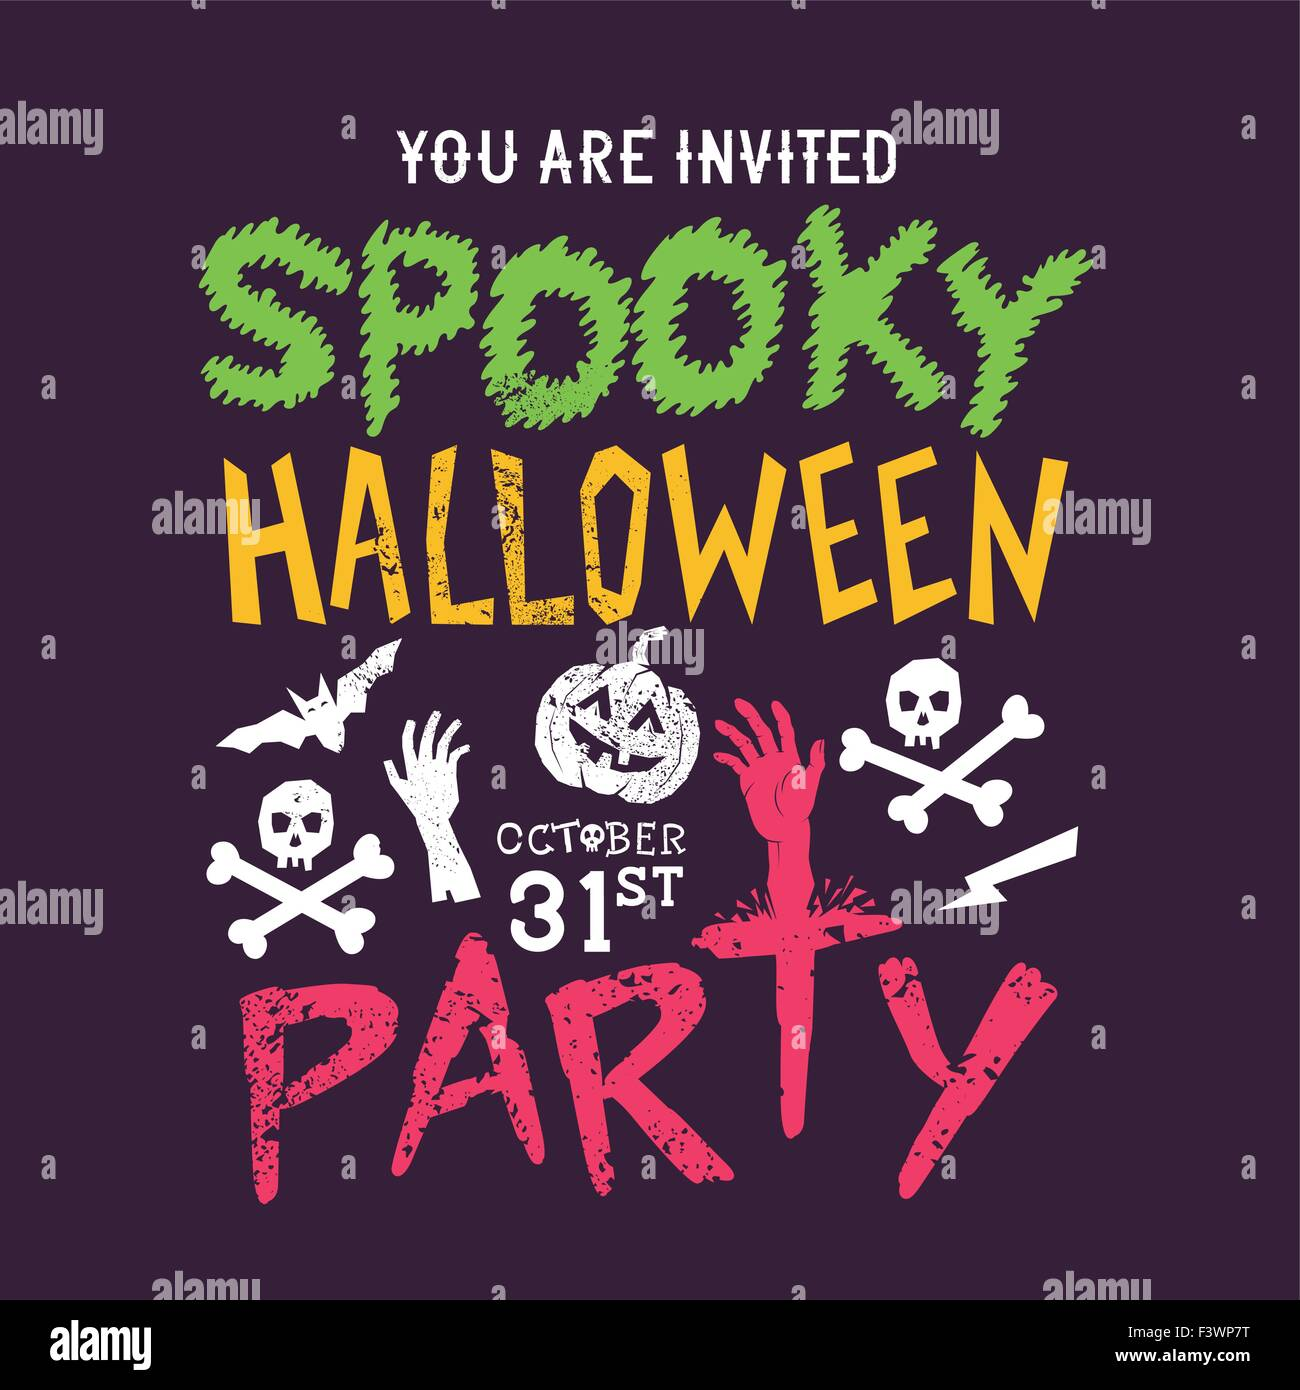 Spooky Halloween party design poster. Happy Halloween! Illustrazione Vettoriale Immagini Stock